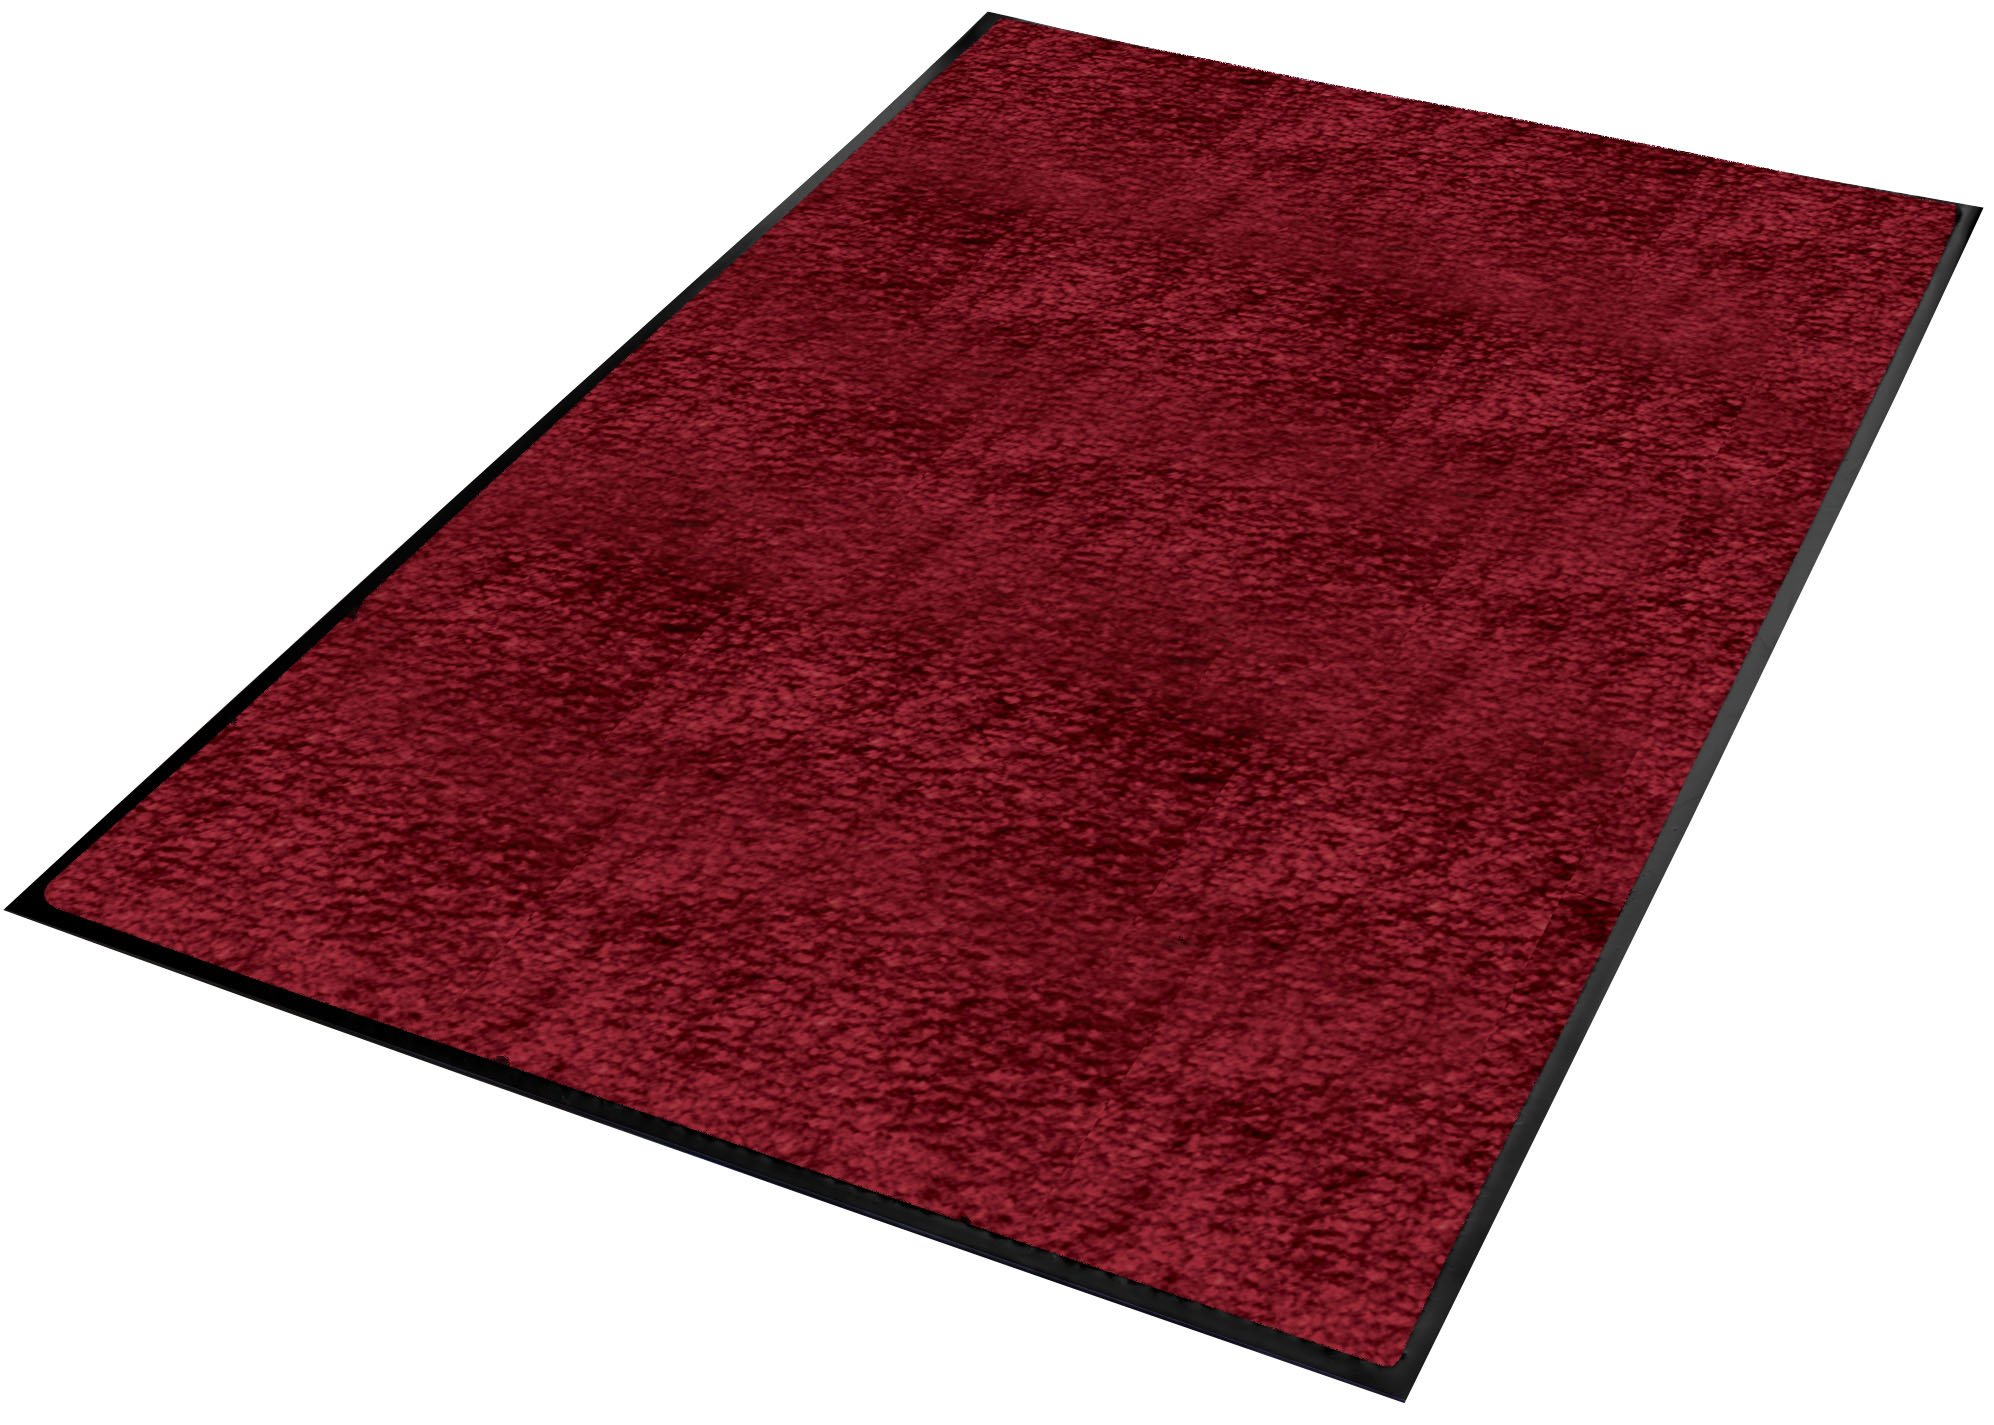 Guardian Platinum Series Indoor Wiper Floor Mat, Rubber with Nylon Carpet, 6'x8', Burgundy by Guardian (Image #5)